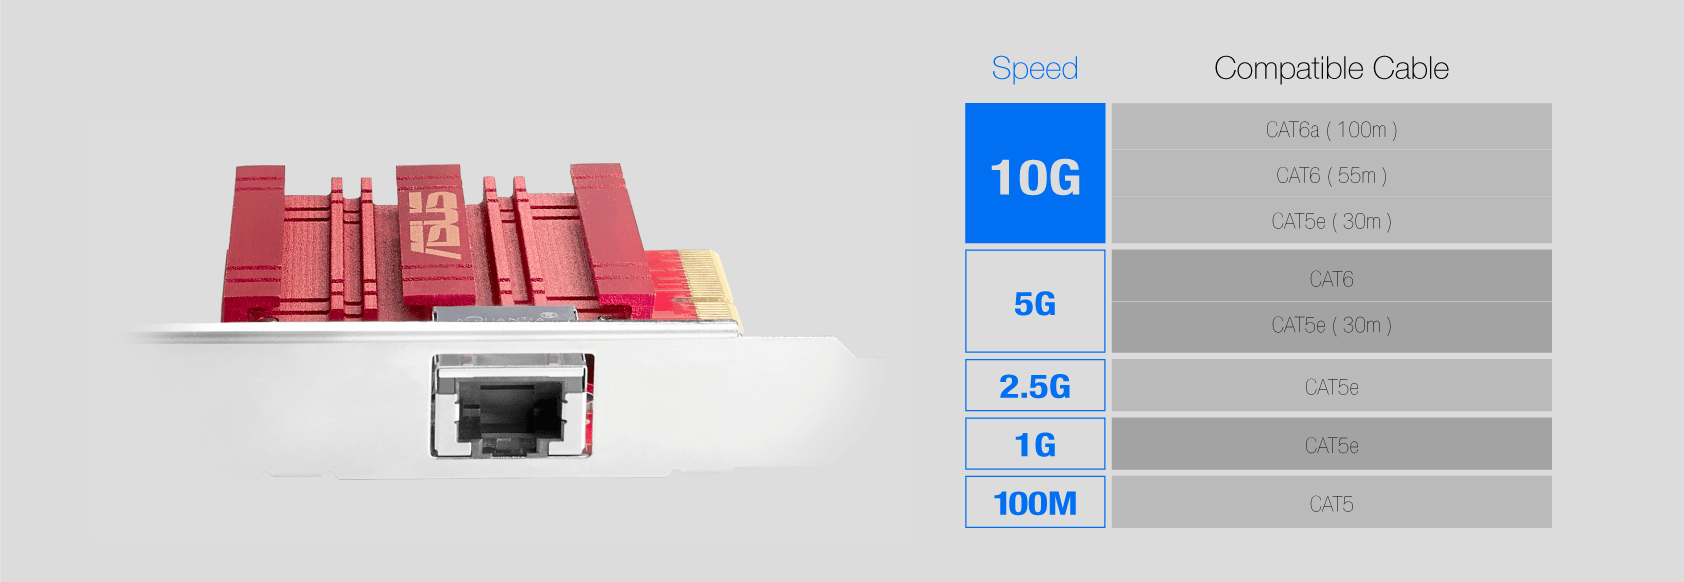 The RJ45 port on XG-C100C gives you easy migration to futuristic 10G speed on acessible copper network cable.